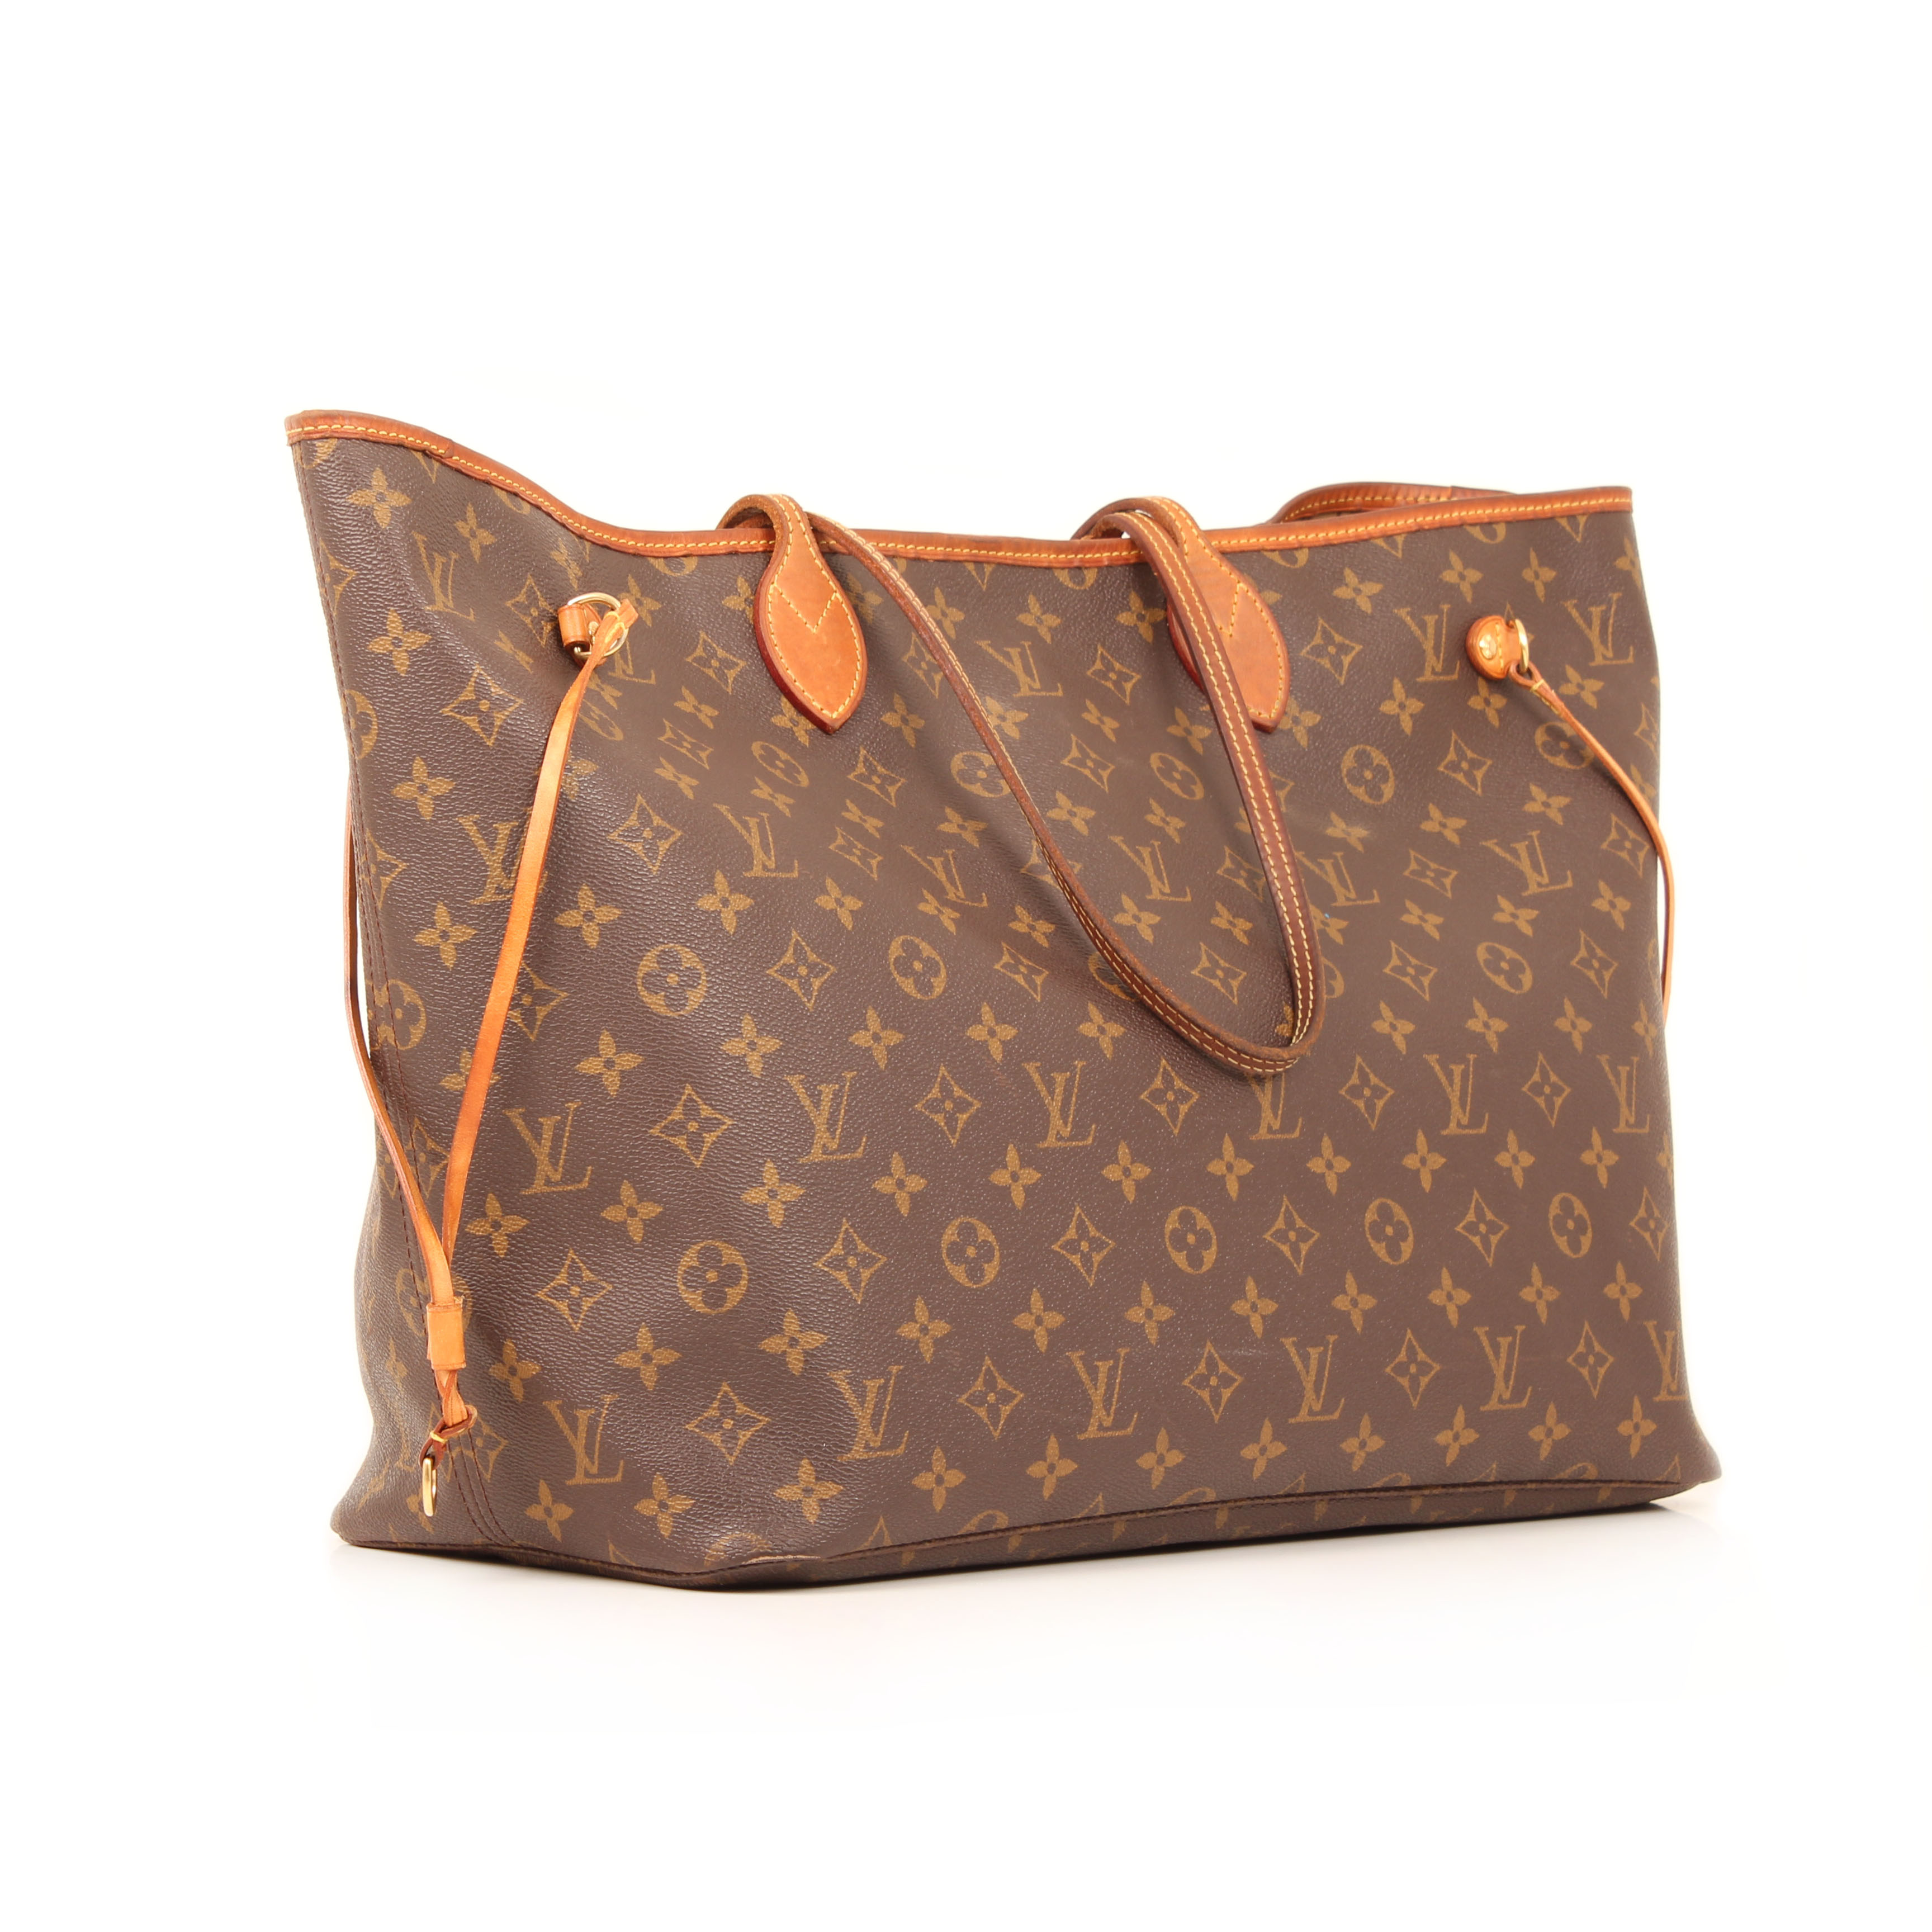 bolso louis vuitton neverfull gm monogram vintage general